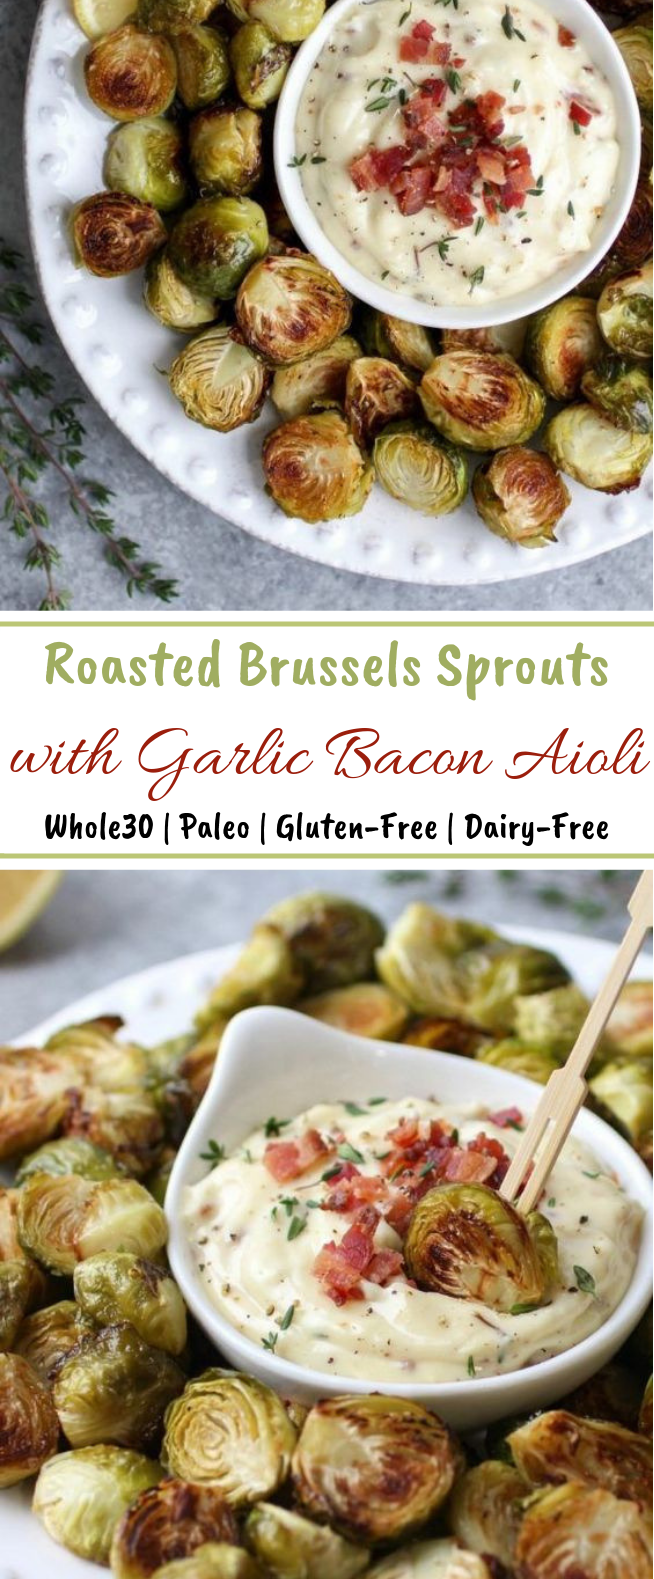 Roasted Brussels Sprouts with Garlic Bacon Aioli #whole30 #paleo